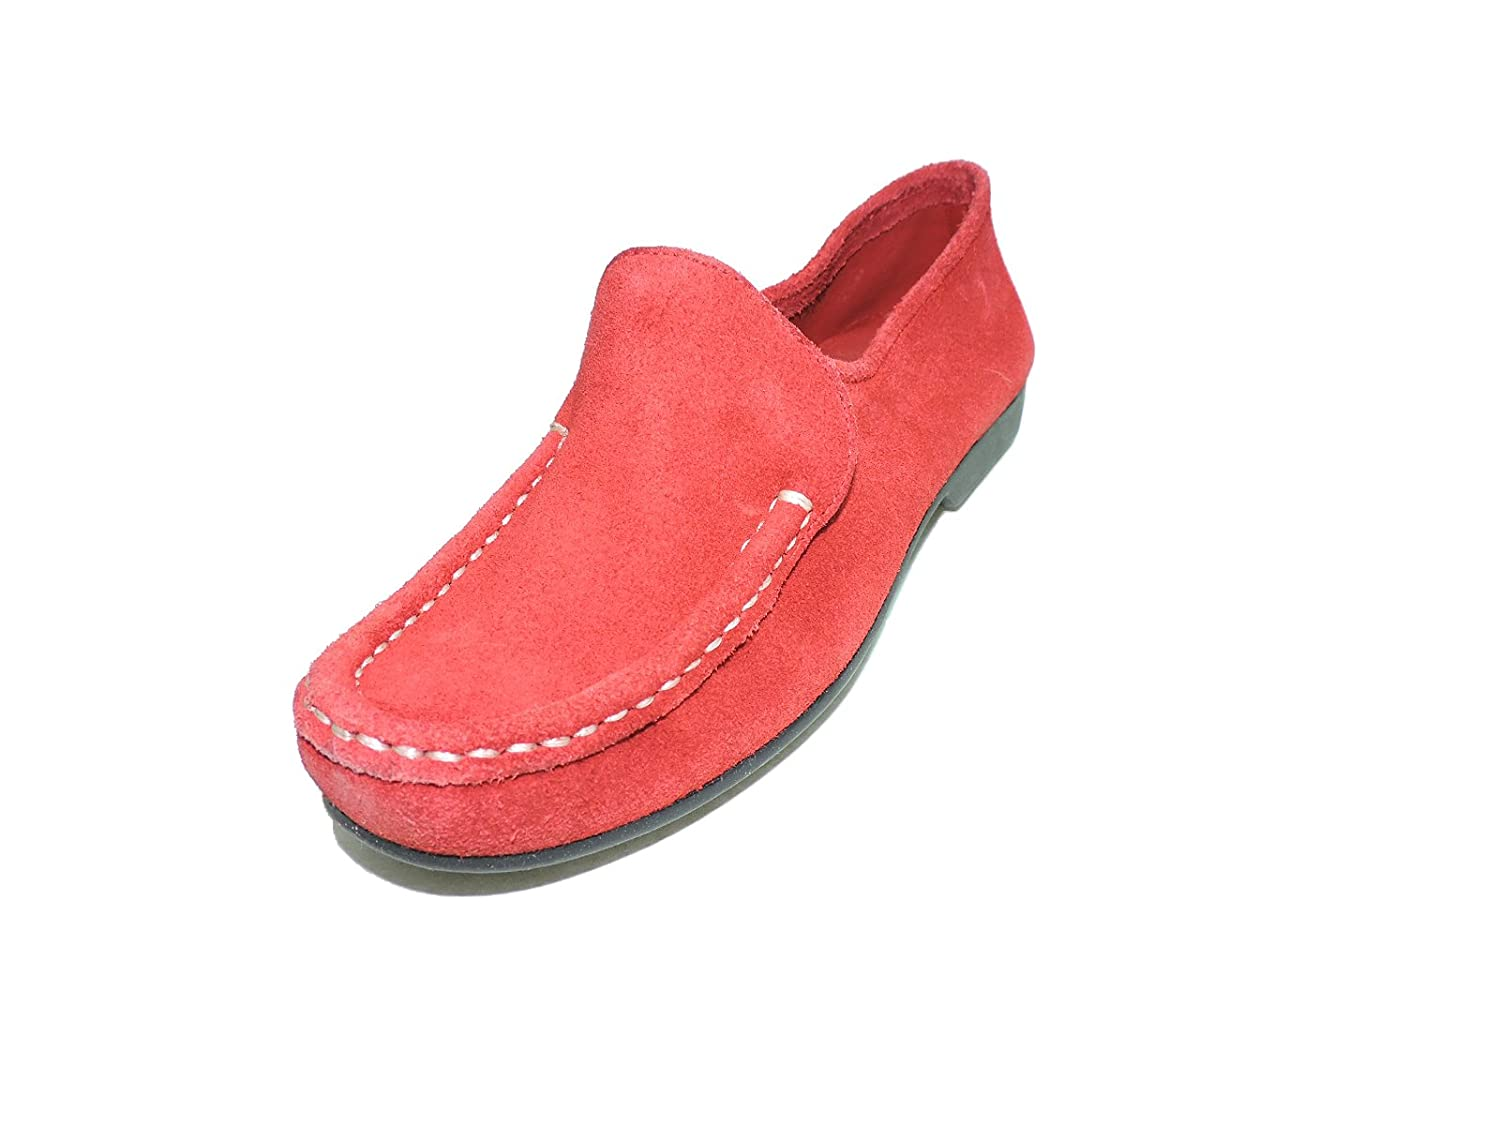 Bernardo Womens Guidabene Red Suede Flat, Moccasin Loafer